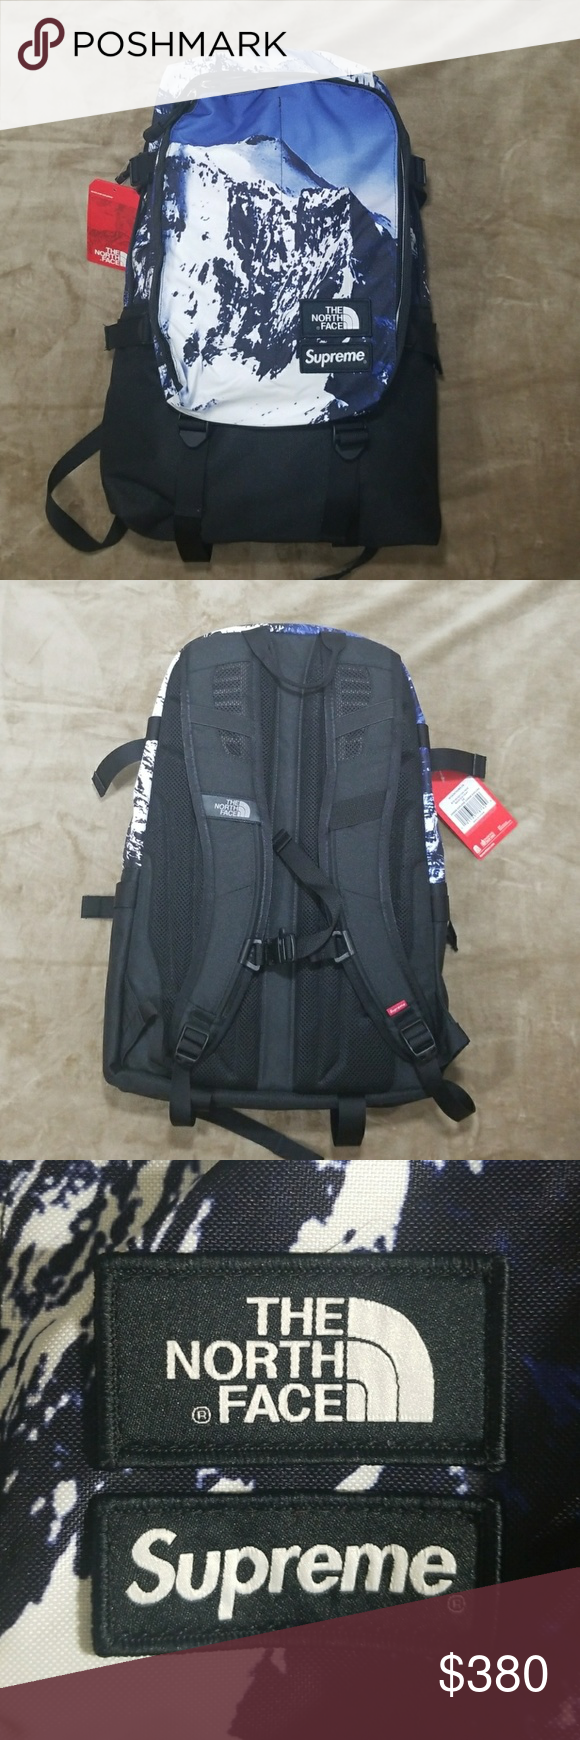 0a5c8e32e4 SUPREME The North Face Mountain Expedition B-pack Brand New Supreme Backpack;  100% Authentic w/receipt Supreme Bags Backpacks